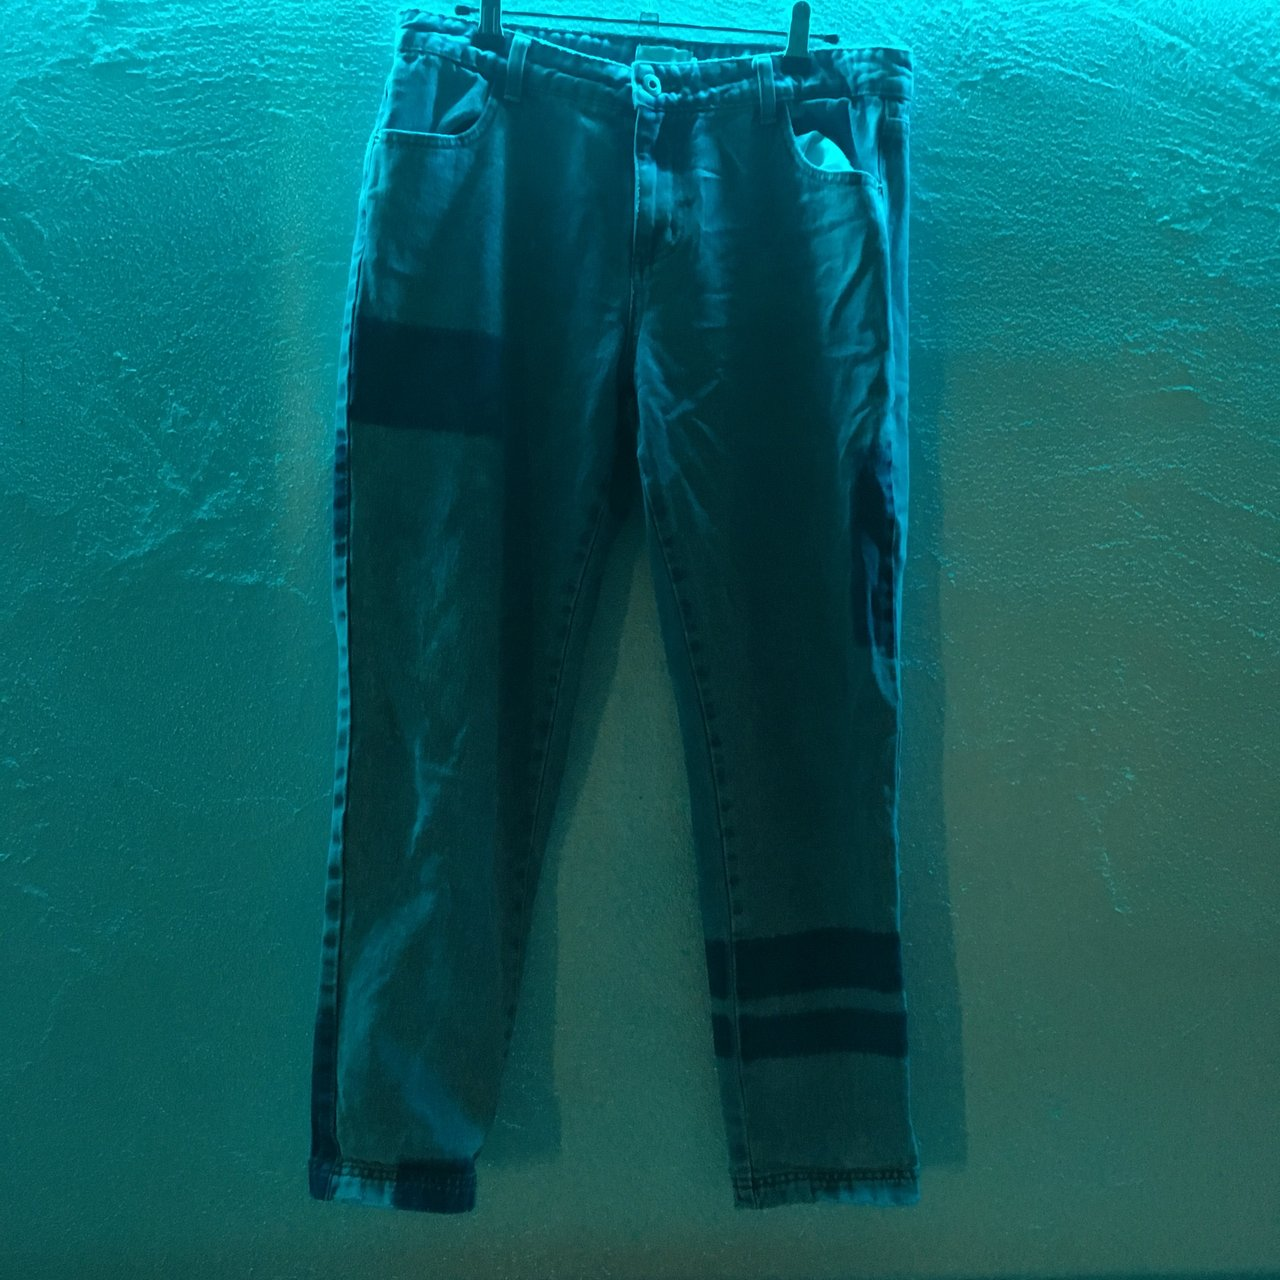 69cd920bba0 TWINTIP JEANS JEANS SIZE 30